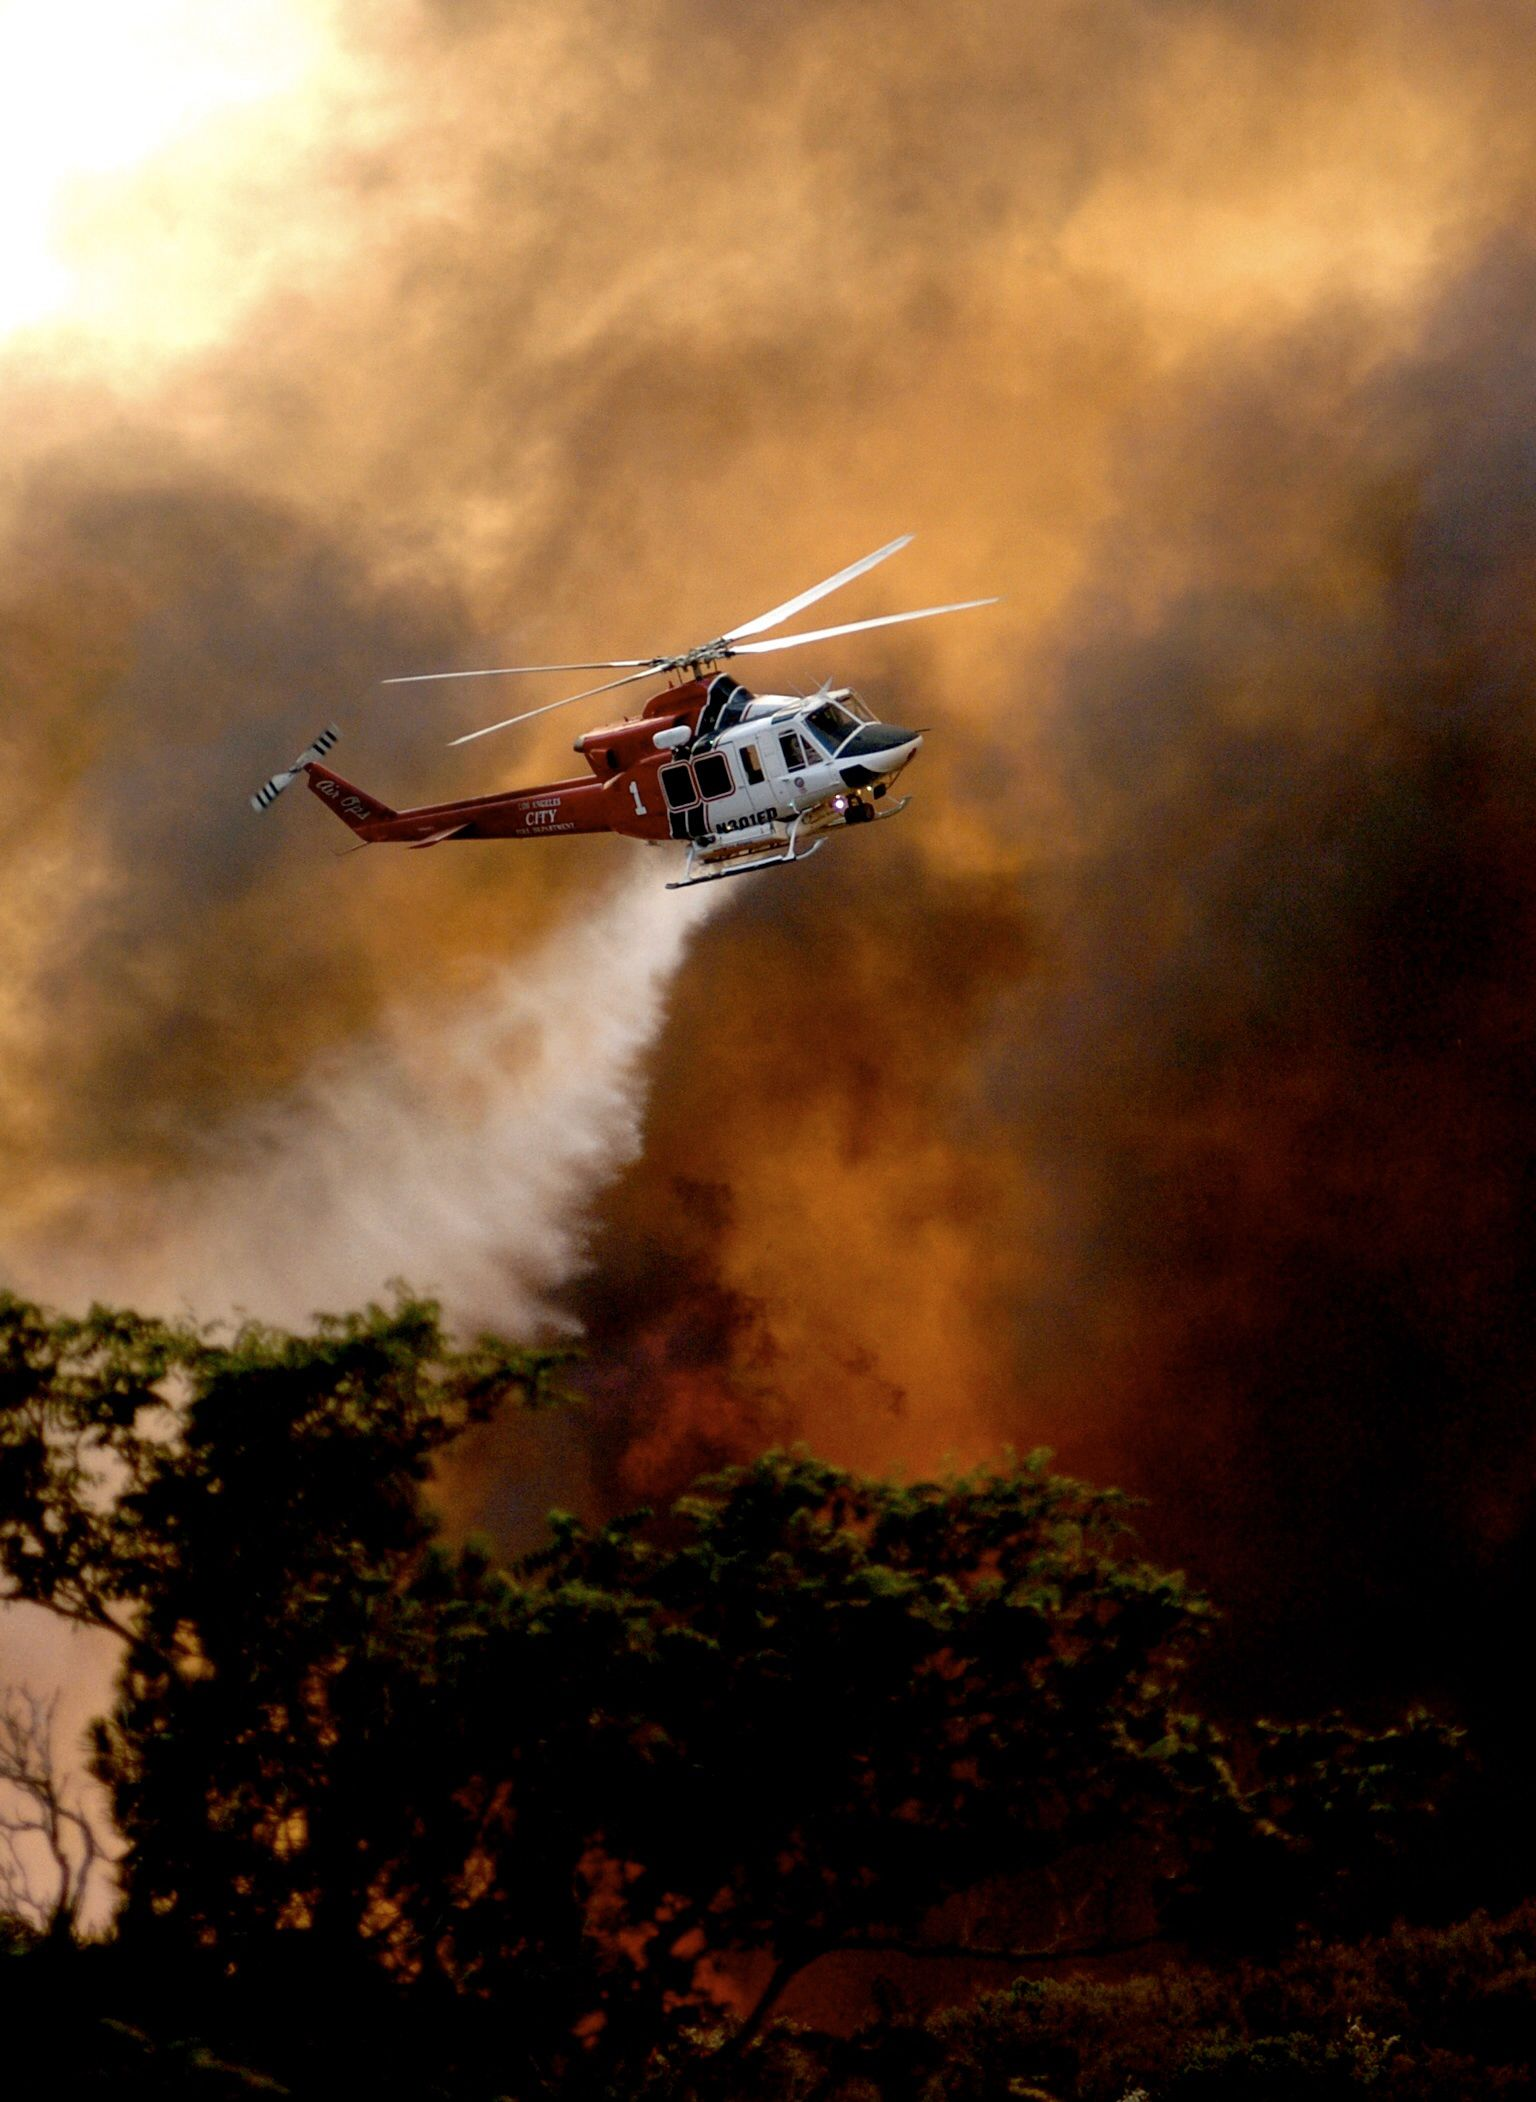 A Los Angeles City Fire Department Helicopter Makes A Drop At A Brush Fire In The County Of L A During A Fire I Wildland Fire Fire Trucks Wildland Firefighter